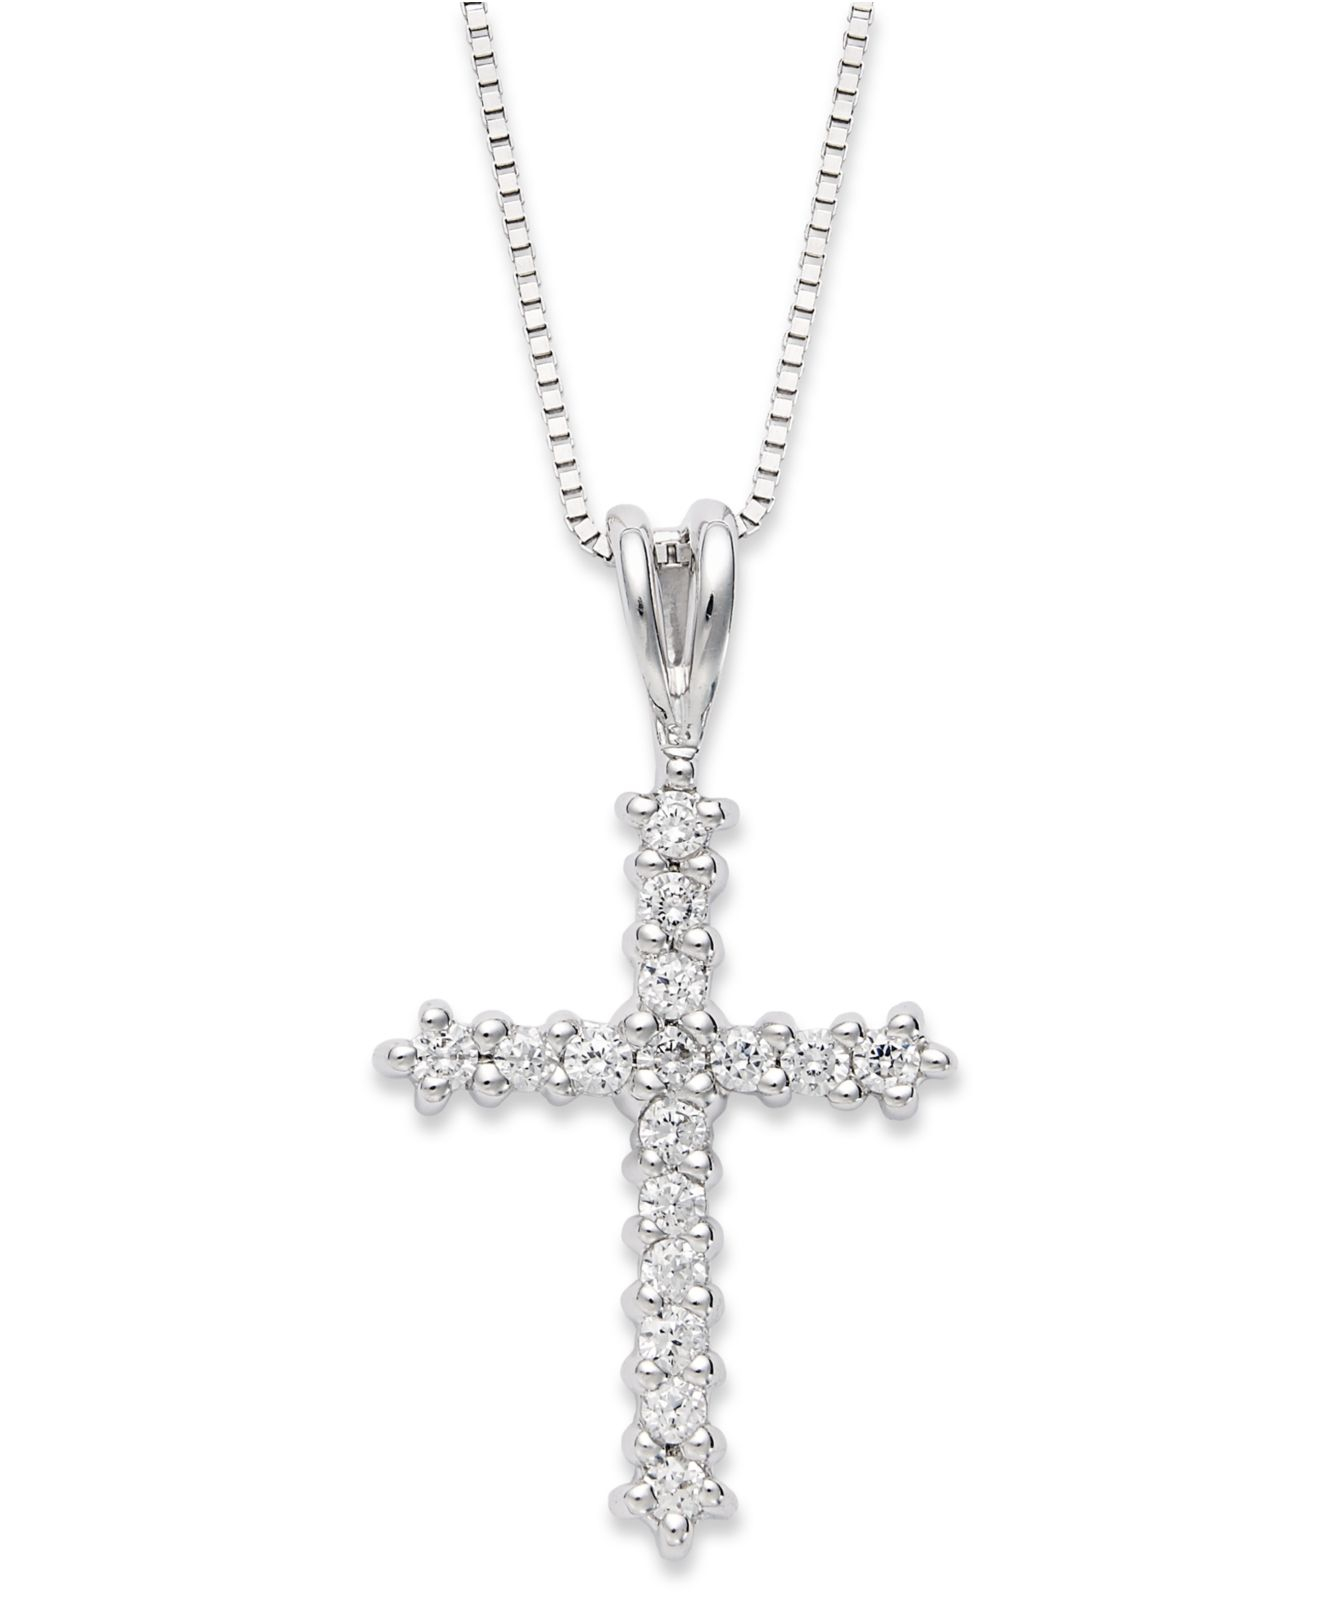 macy 39 s diamond cross pendant necklace 1 2 ct t w in. Black Bedroom Furniture Sets. Home Design Ideas